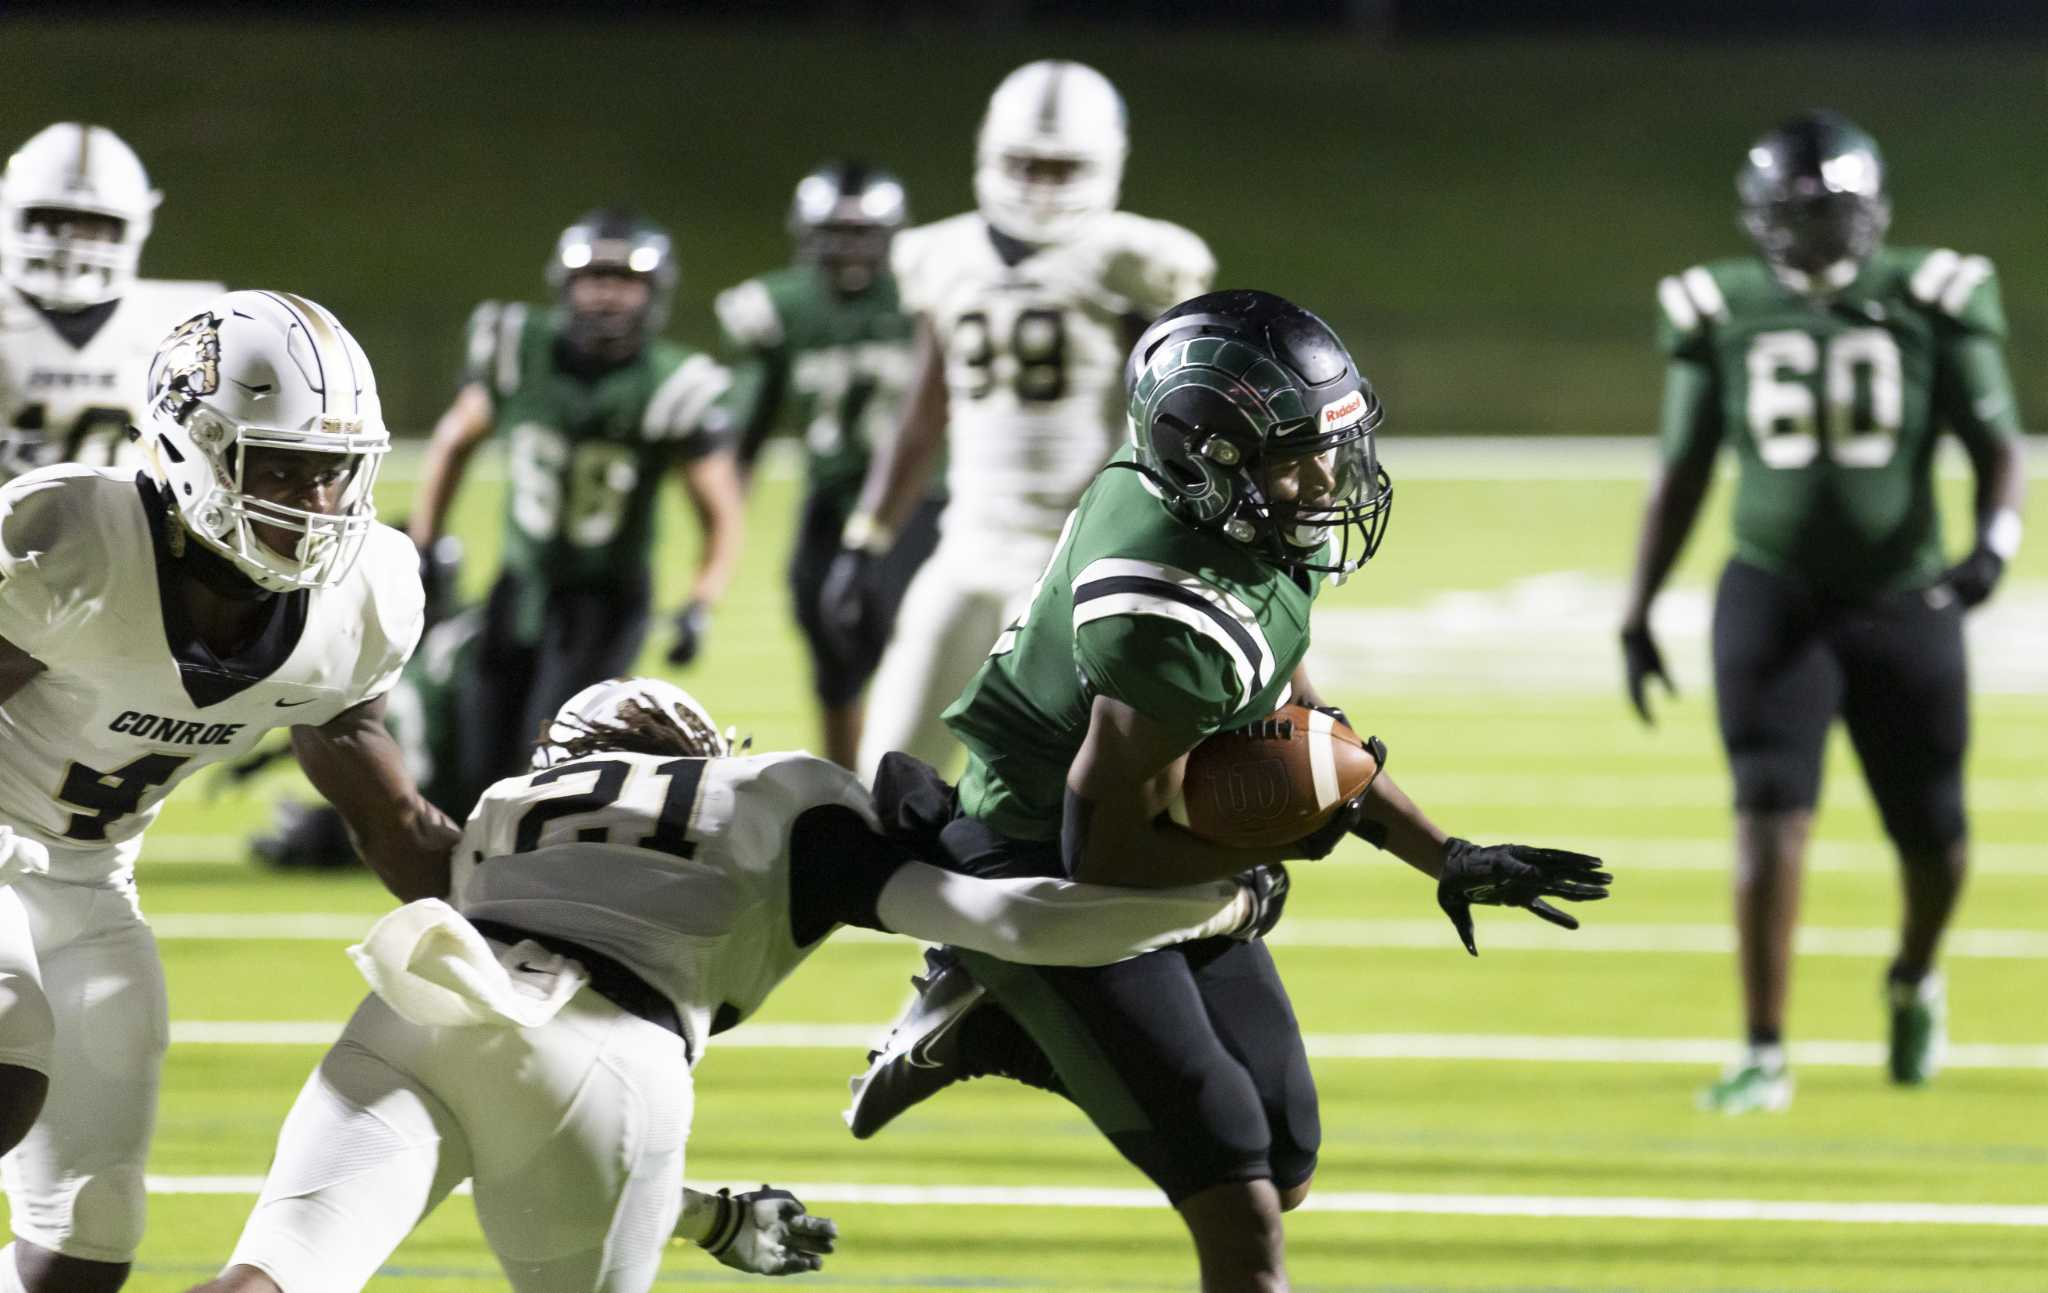 FOOTBALL: Mayde Creek outlasts Conroe in opener